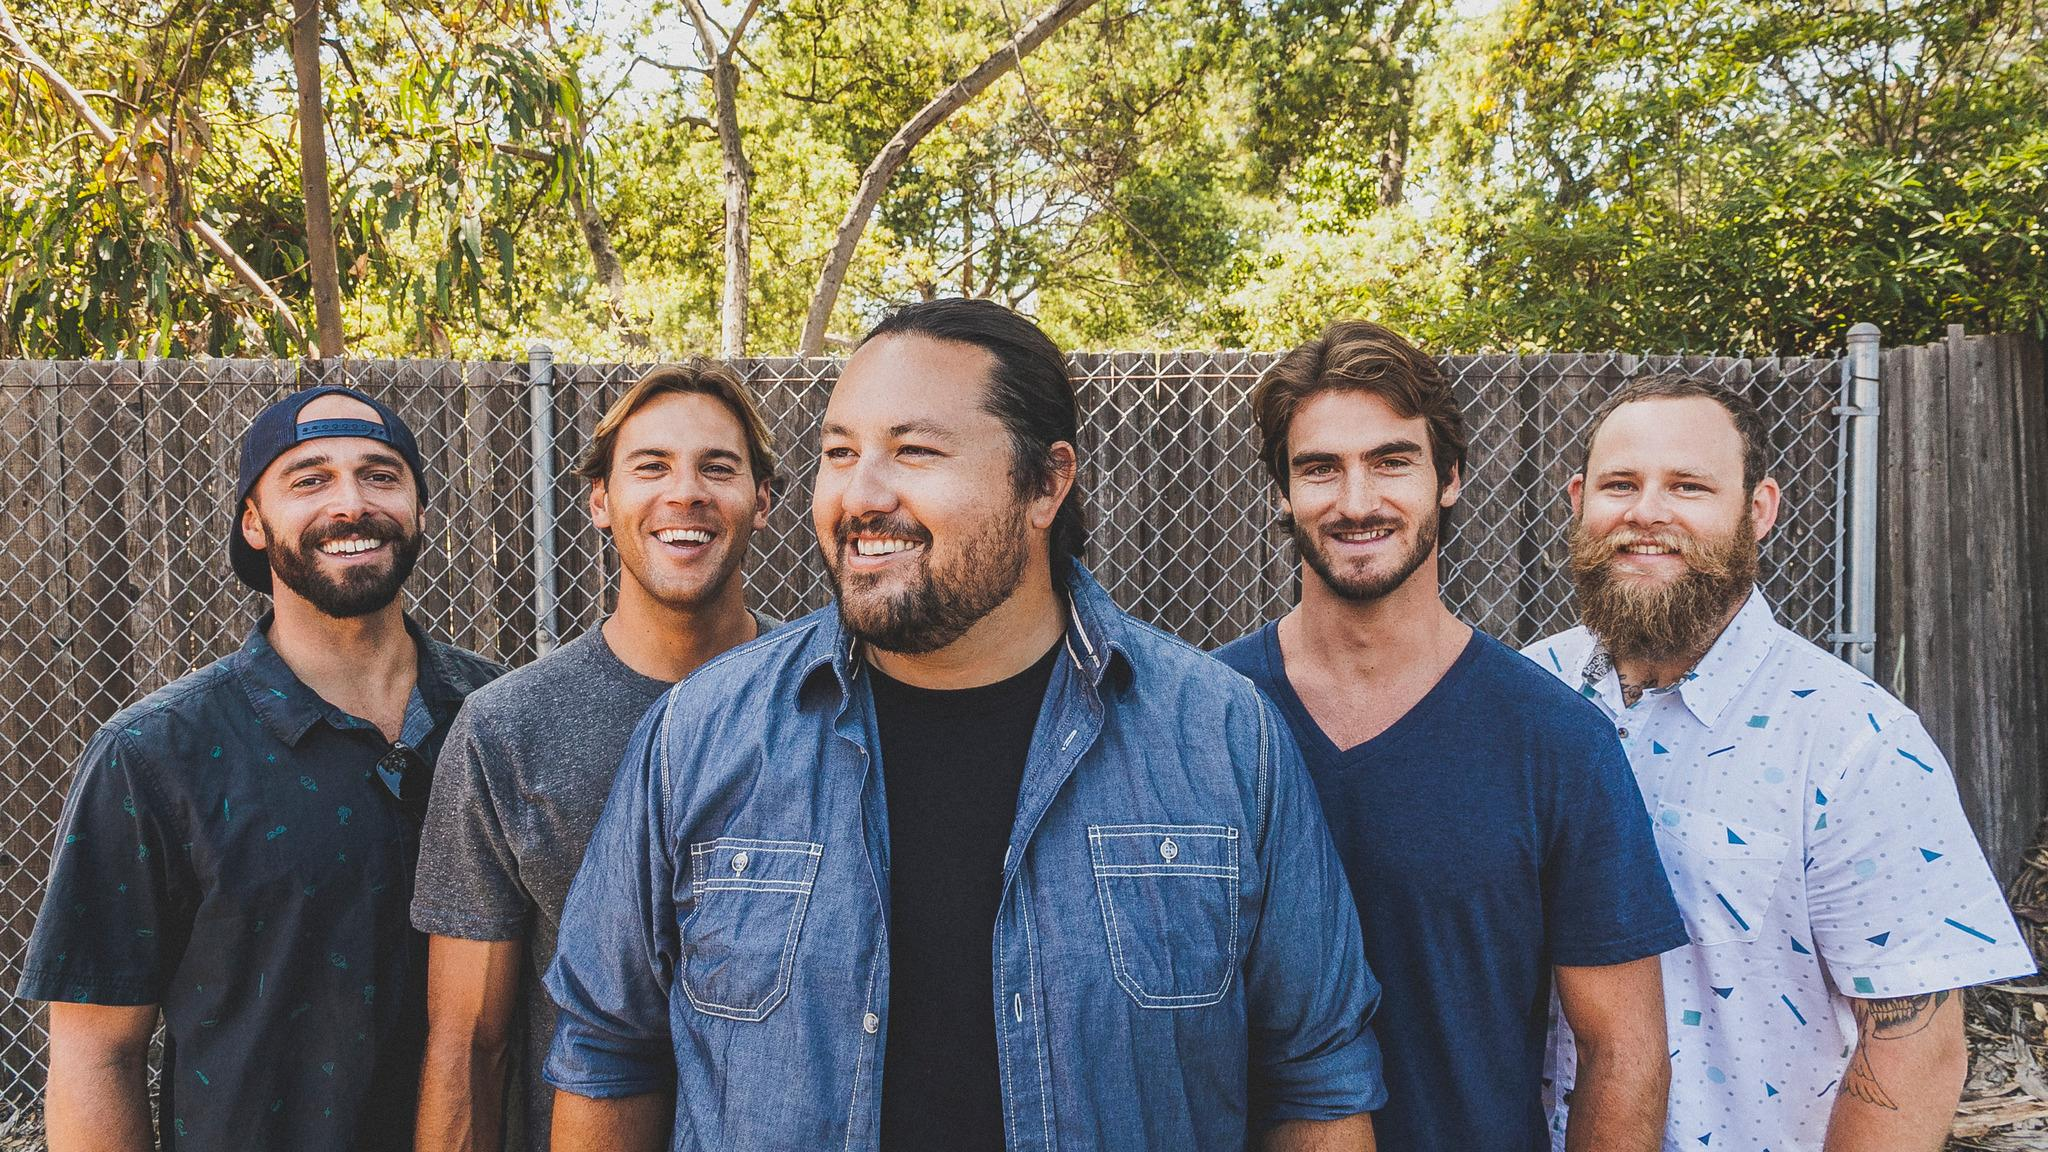 Iration - Meet & Greet Packages at Rainbow Ballroom